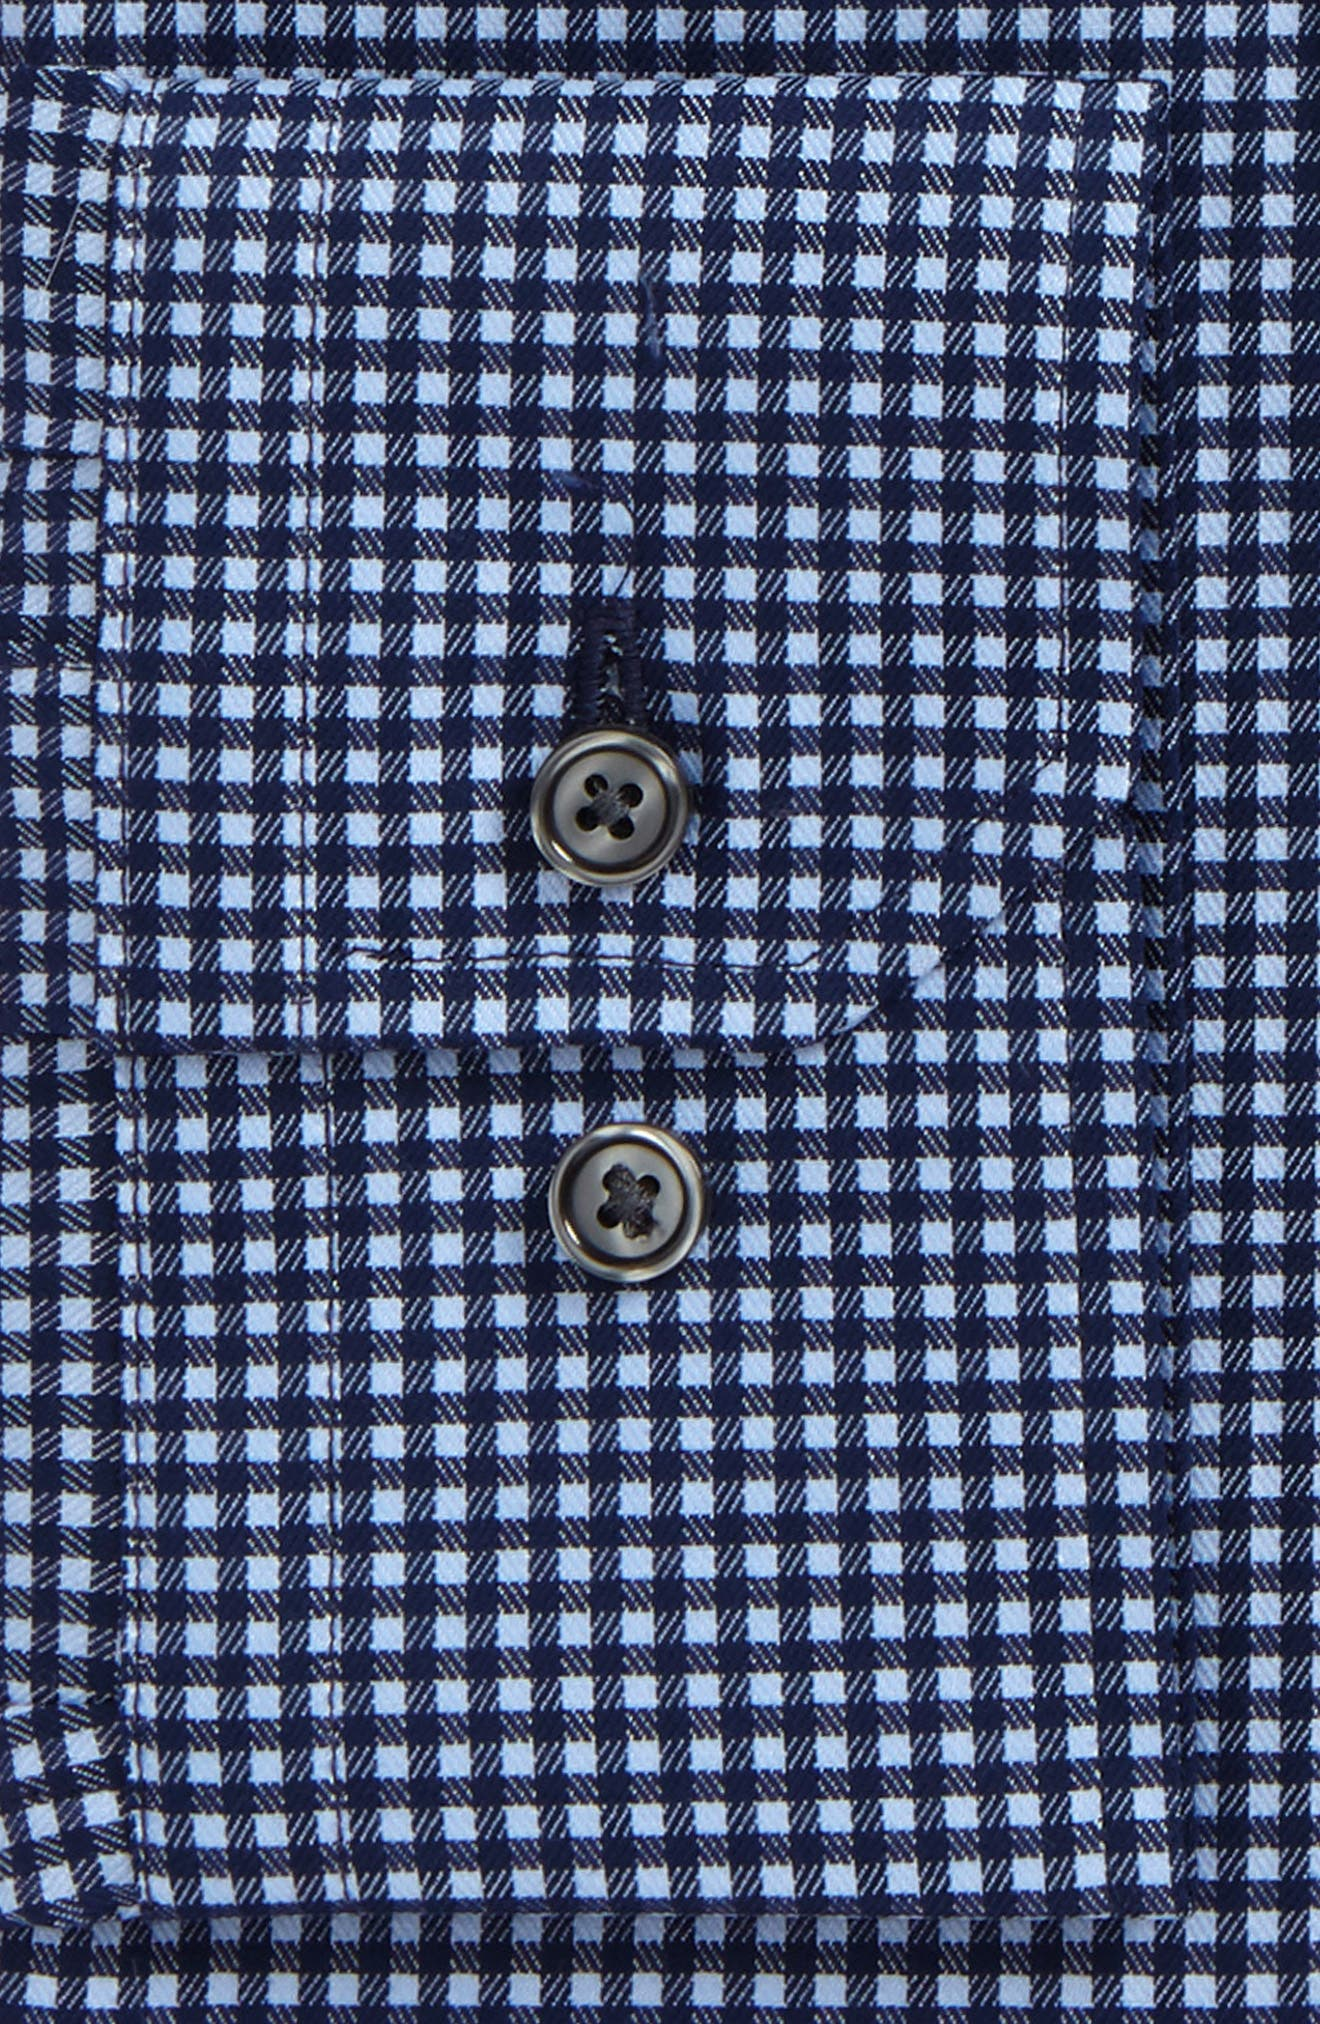 Trim Fit Non-Iron Check Dress Shirt,                             Alternate thumbnail 2, color,                             Navy Medieval